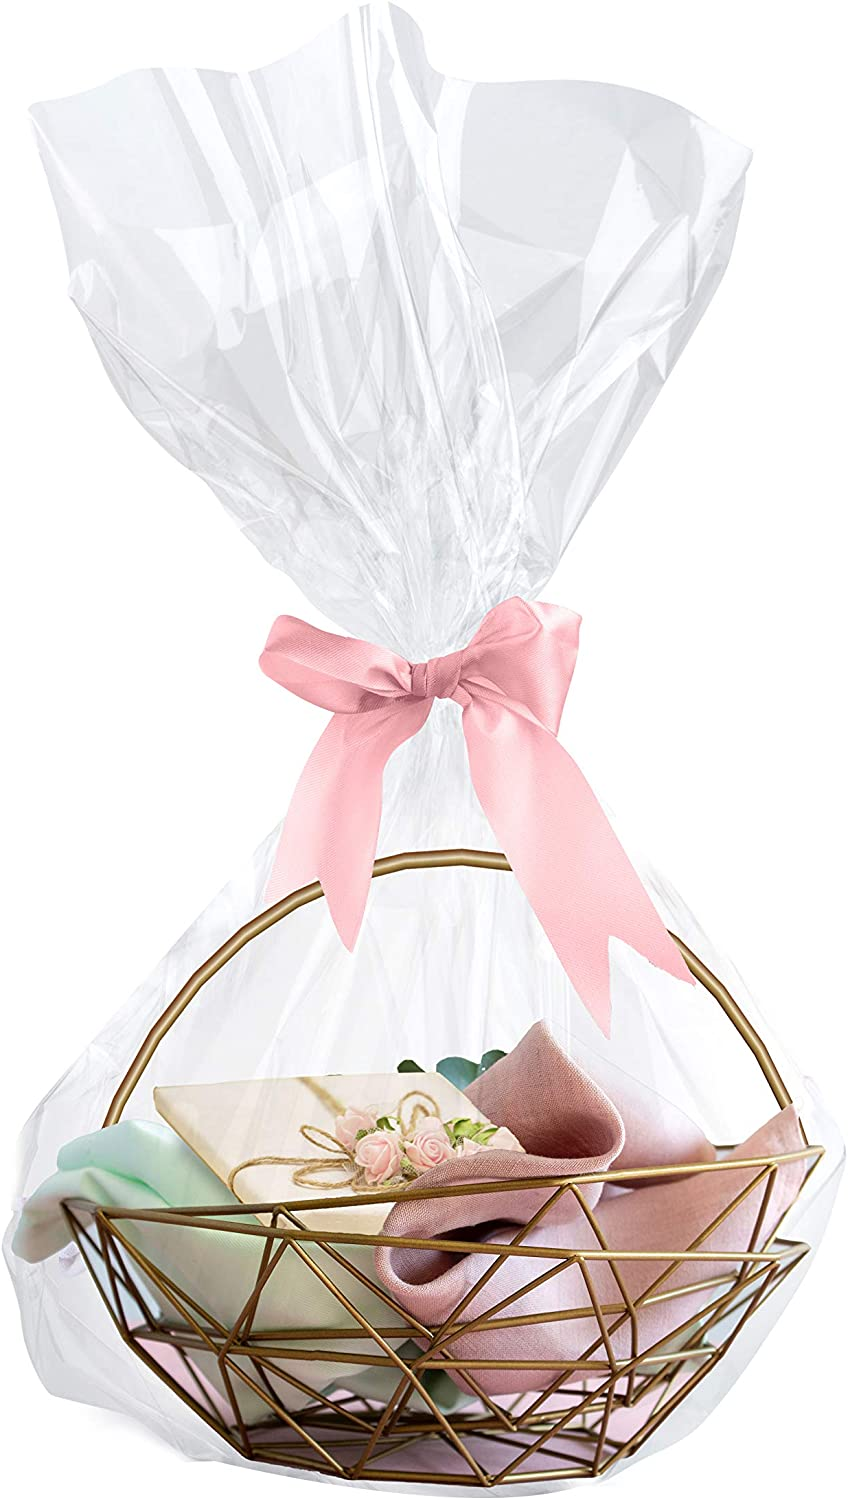 """Clear Basket Bags, 18 Pack Large Clear Cellophane Wrap for Baskets & Gifts 24""""x30"""" 0.75 Mil Thick : Health & Household"""